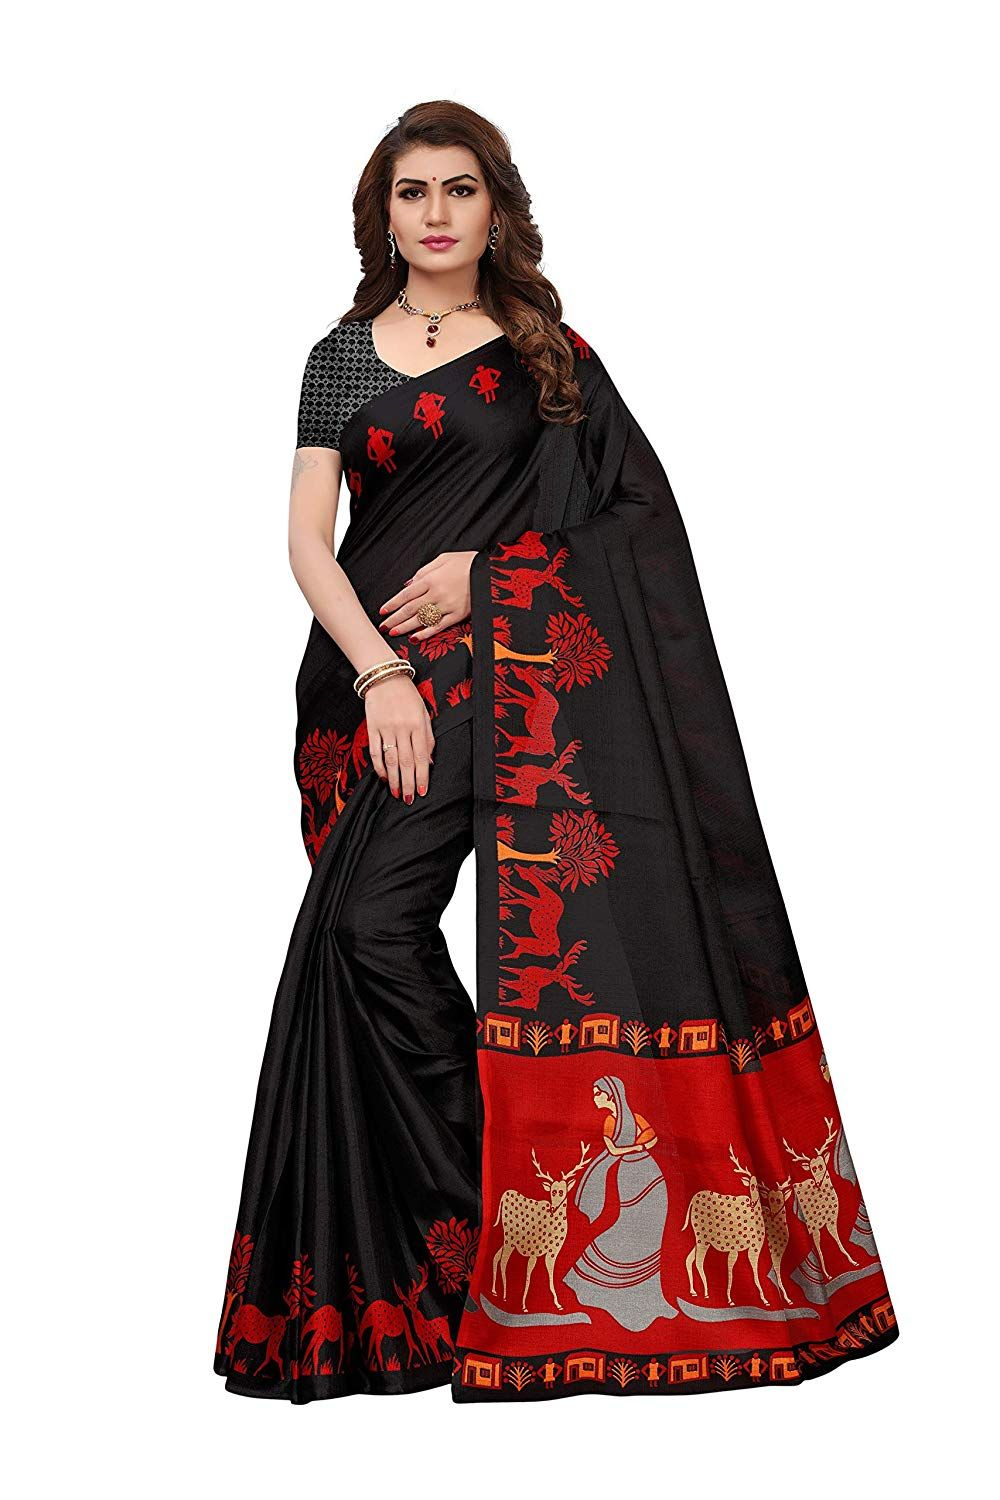 cf67a1cc44 Nardaa Online Store In India. Anni Designer Women's Khadi Mix Fabric Saree  With Blouse